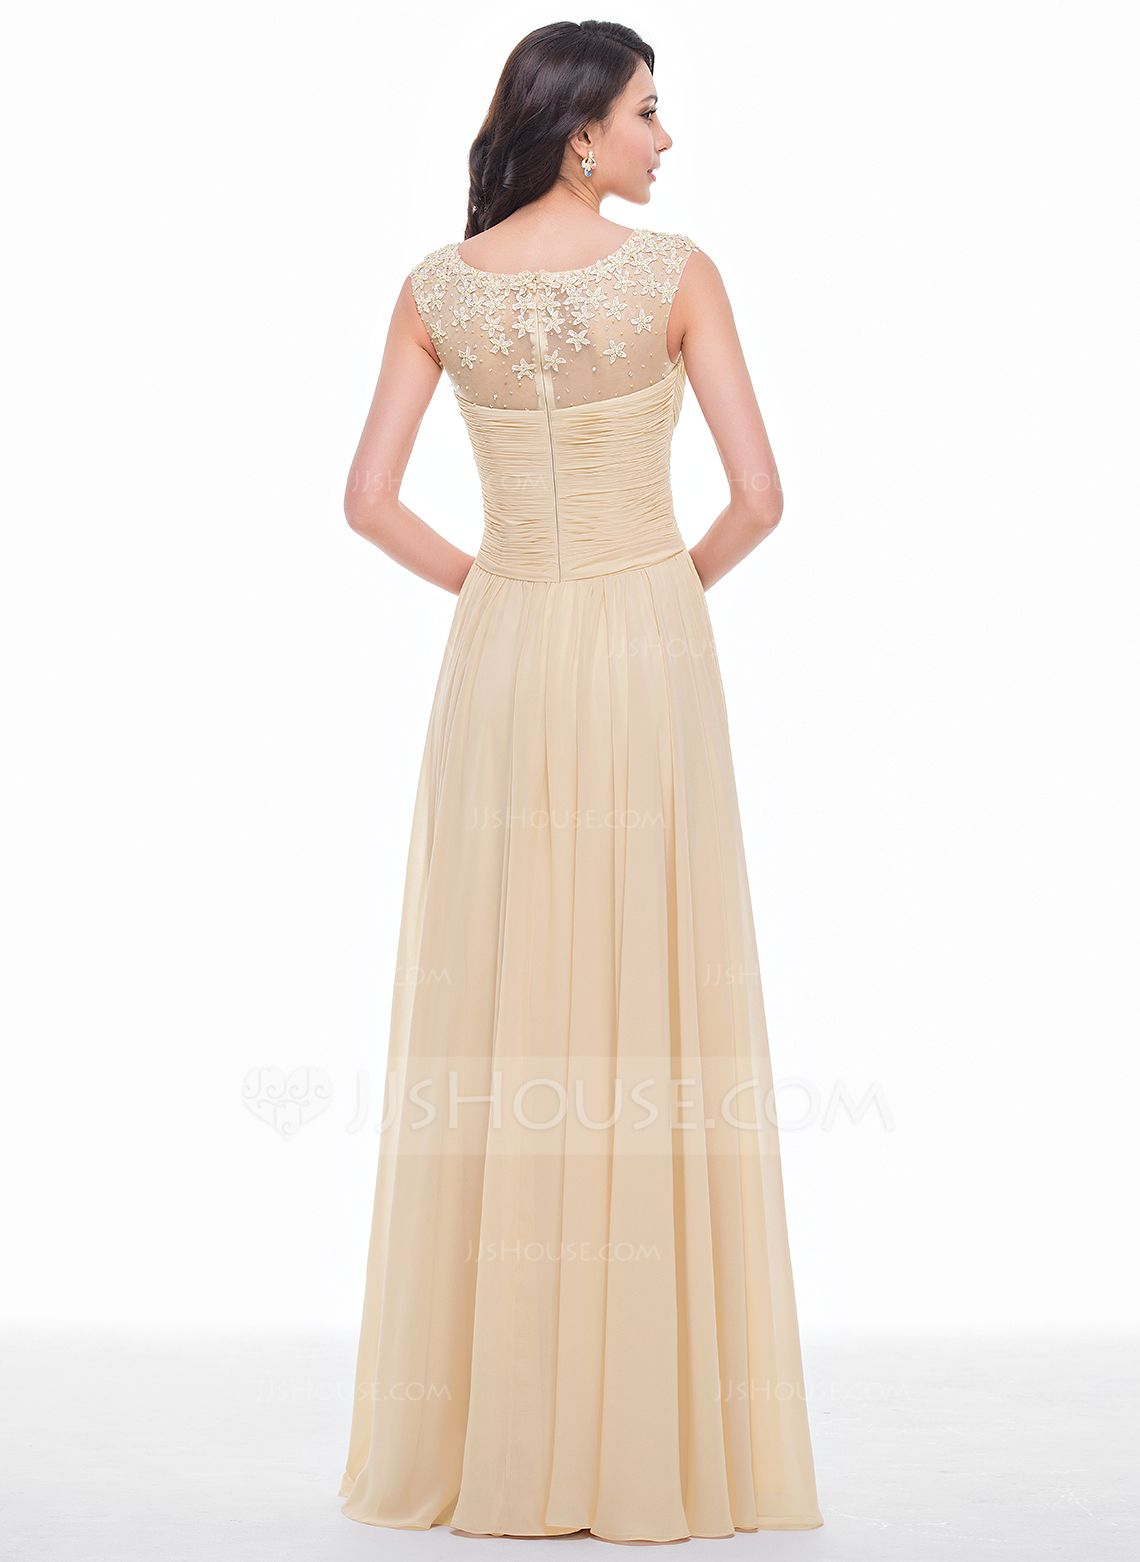 Alineprincess scoop neck floorlength chiffon prom dress with